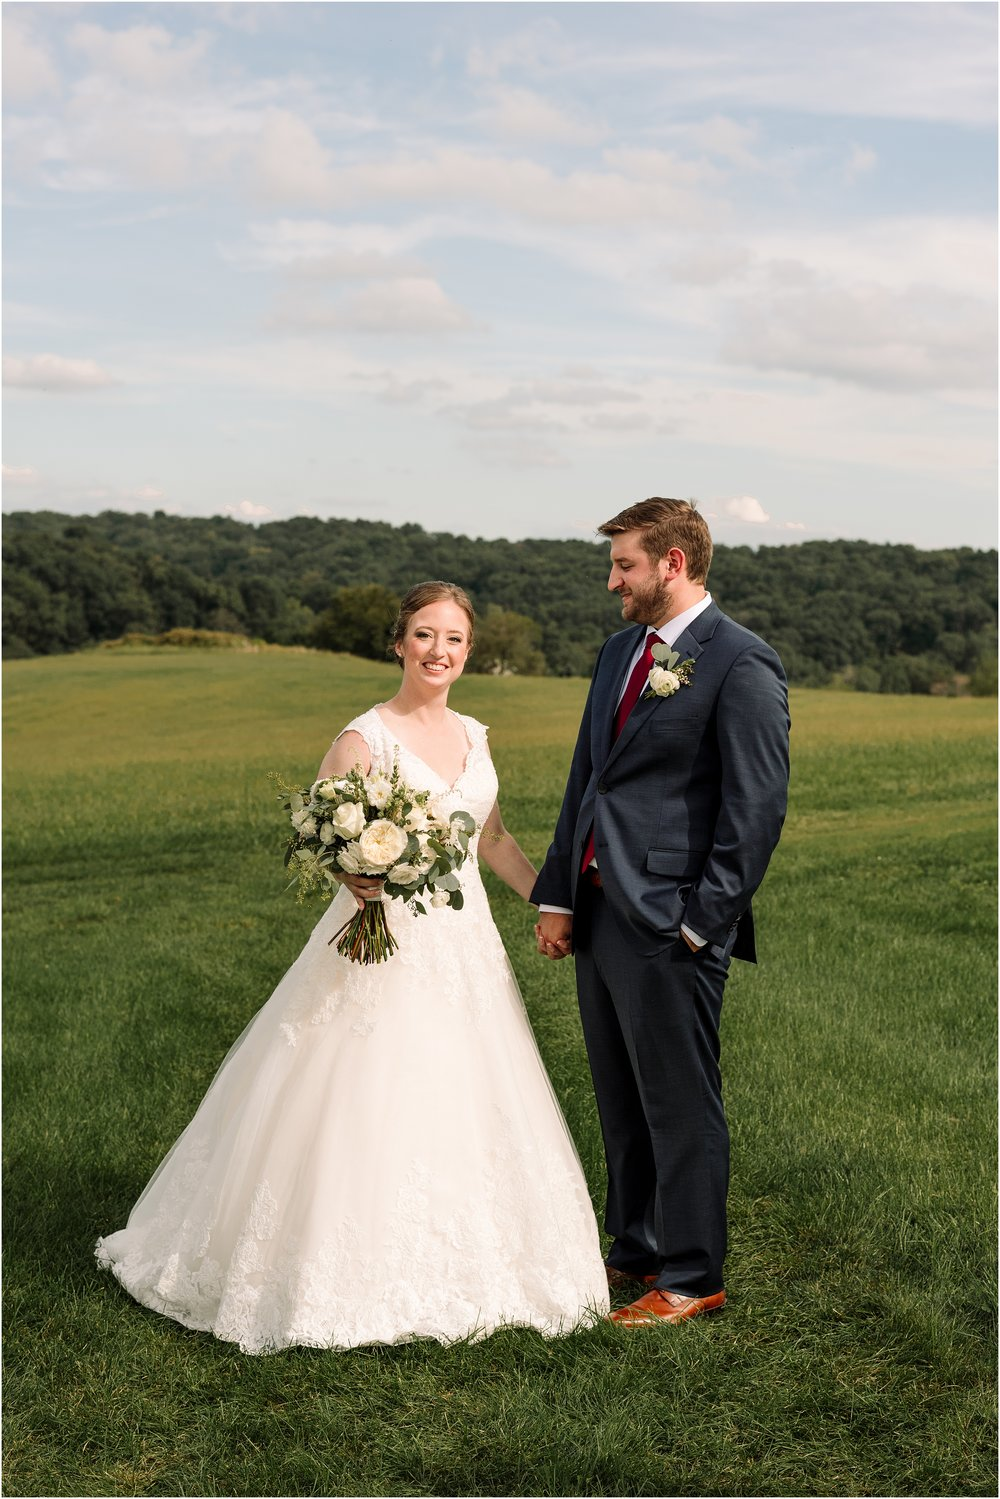 hannah leigh photography Wyndridge Farm Wedding York PA_1531.jpg